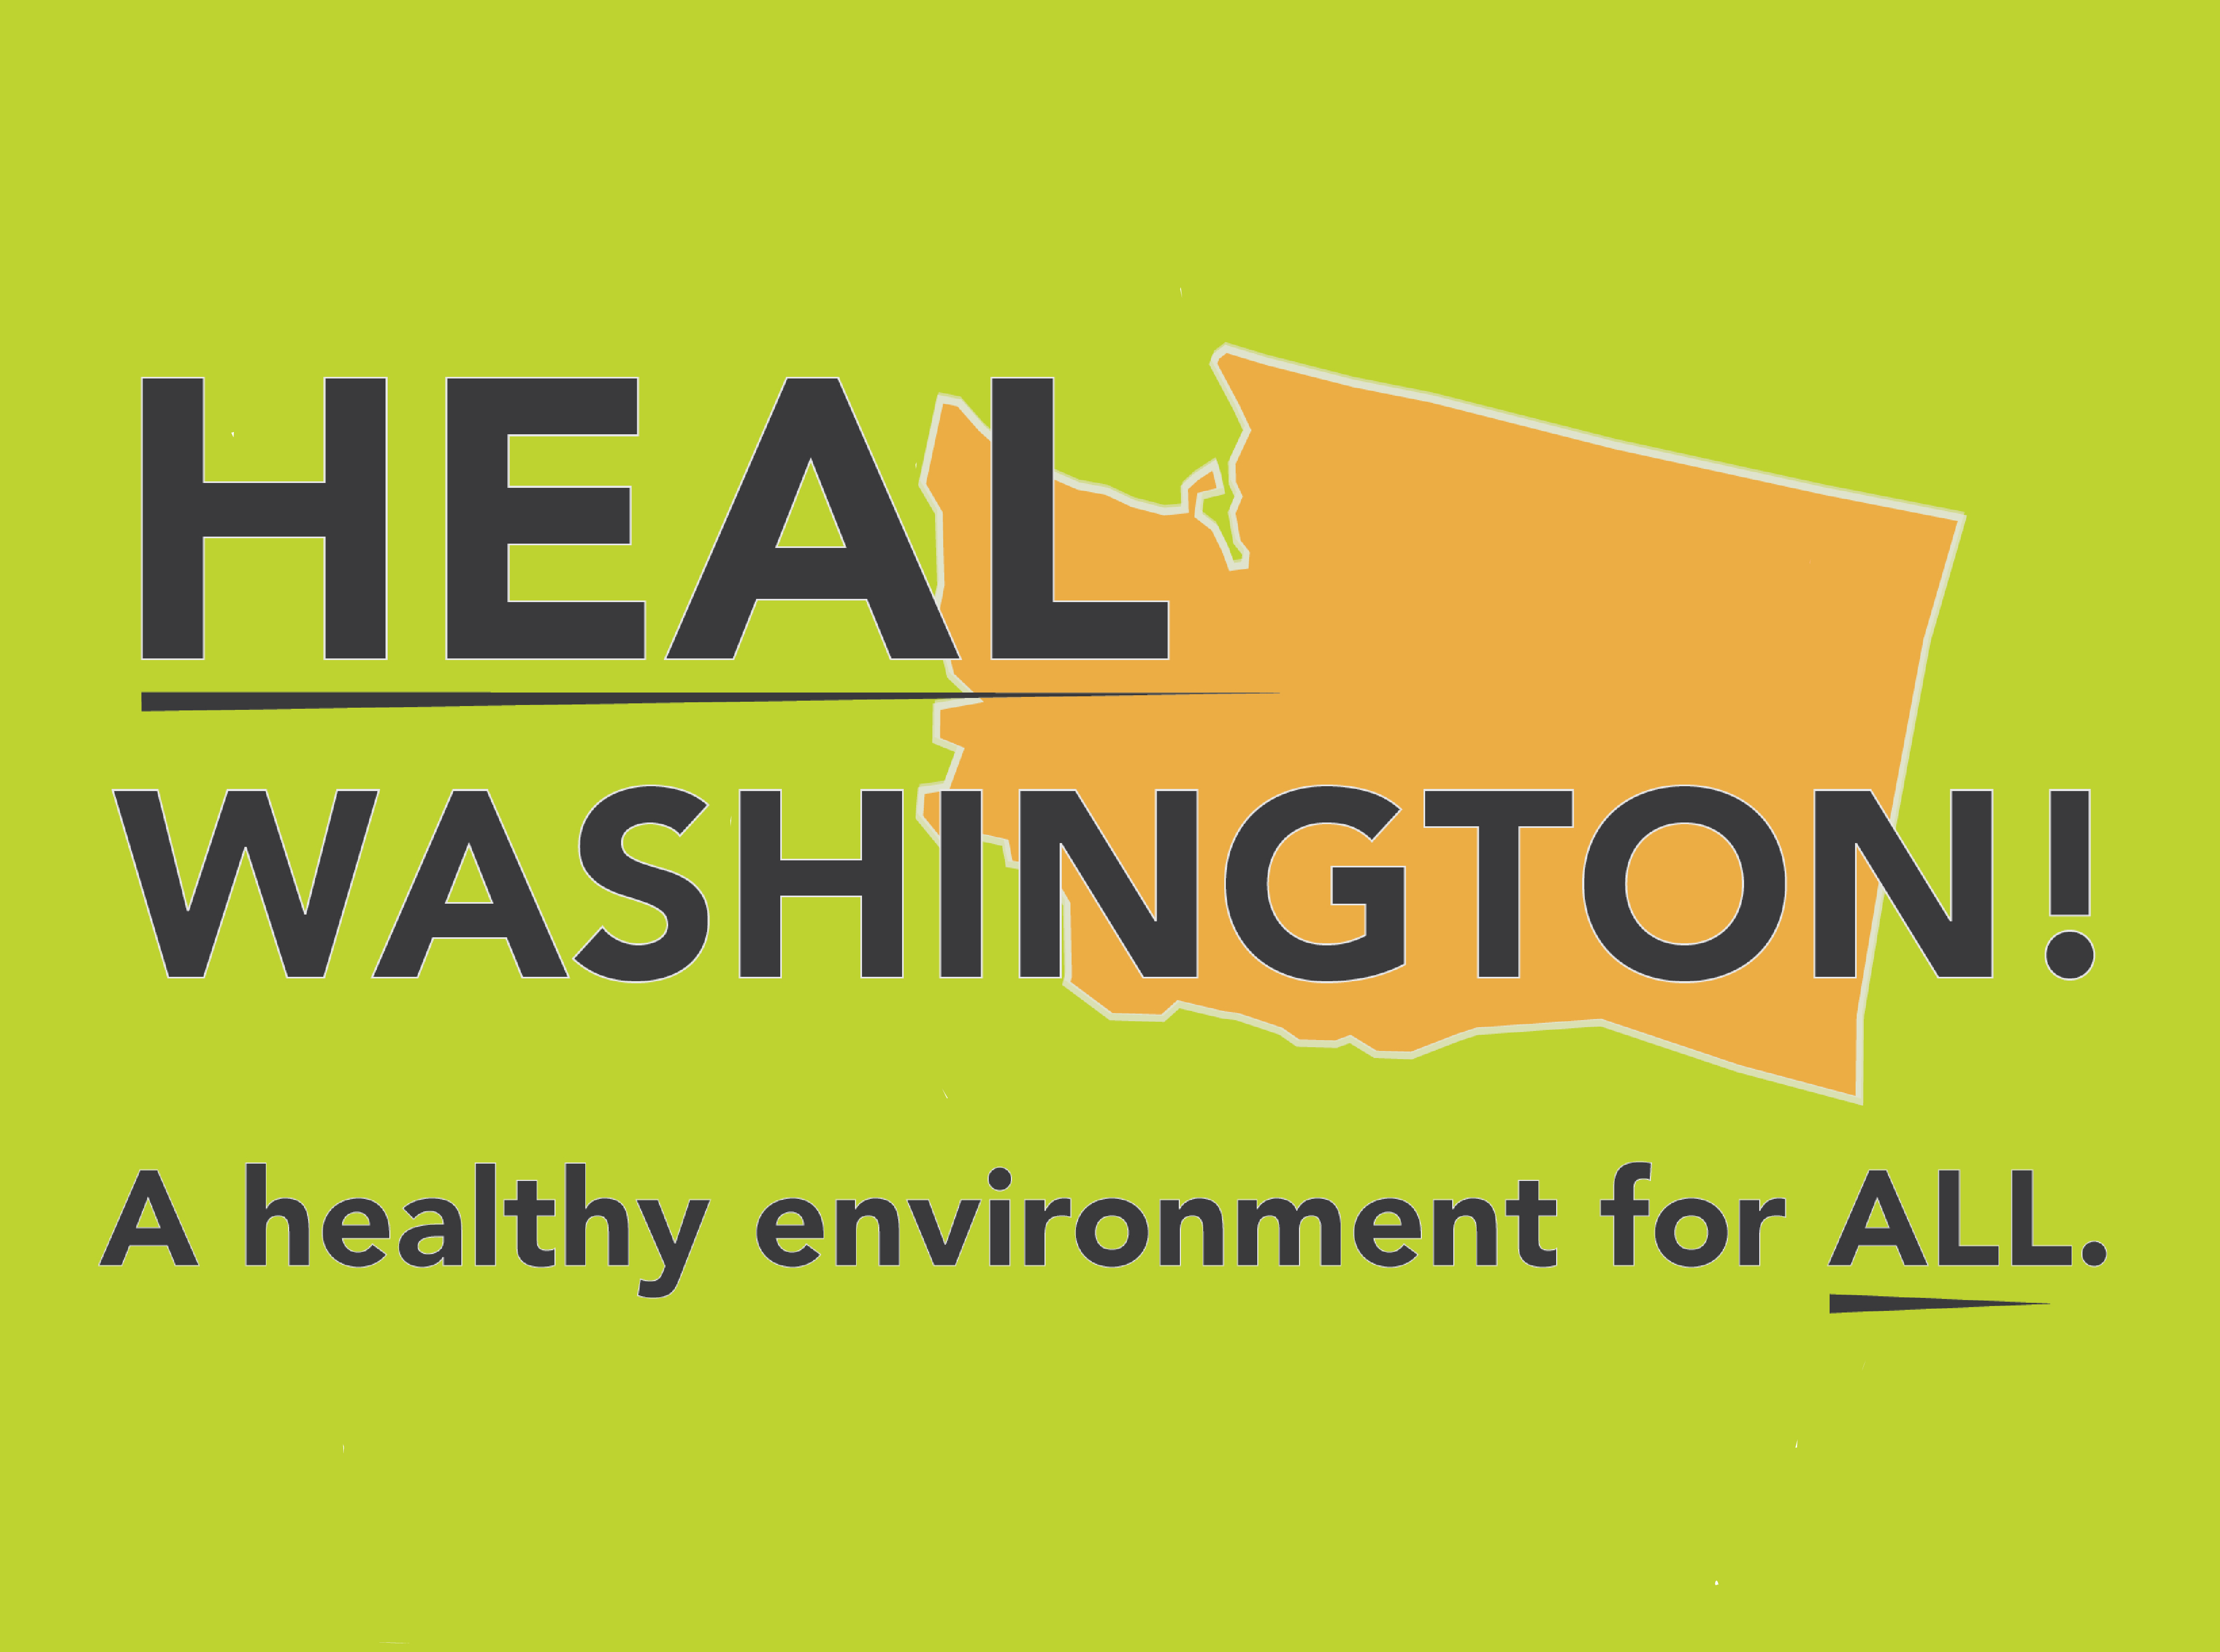 Our legislative priorities: Healthy environments for all and clean energy justice in 2019